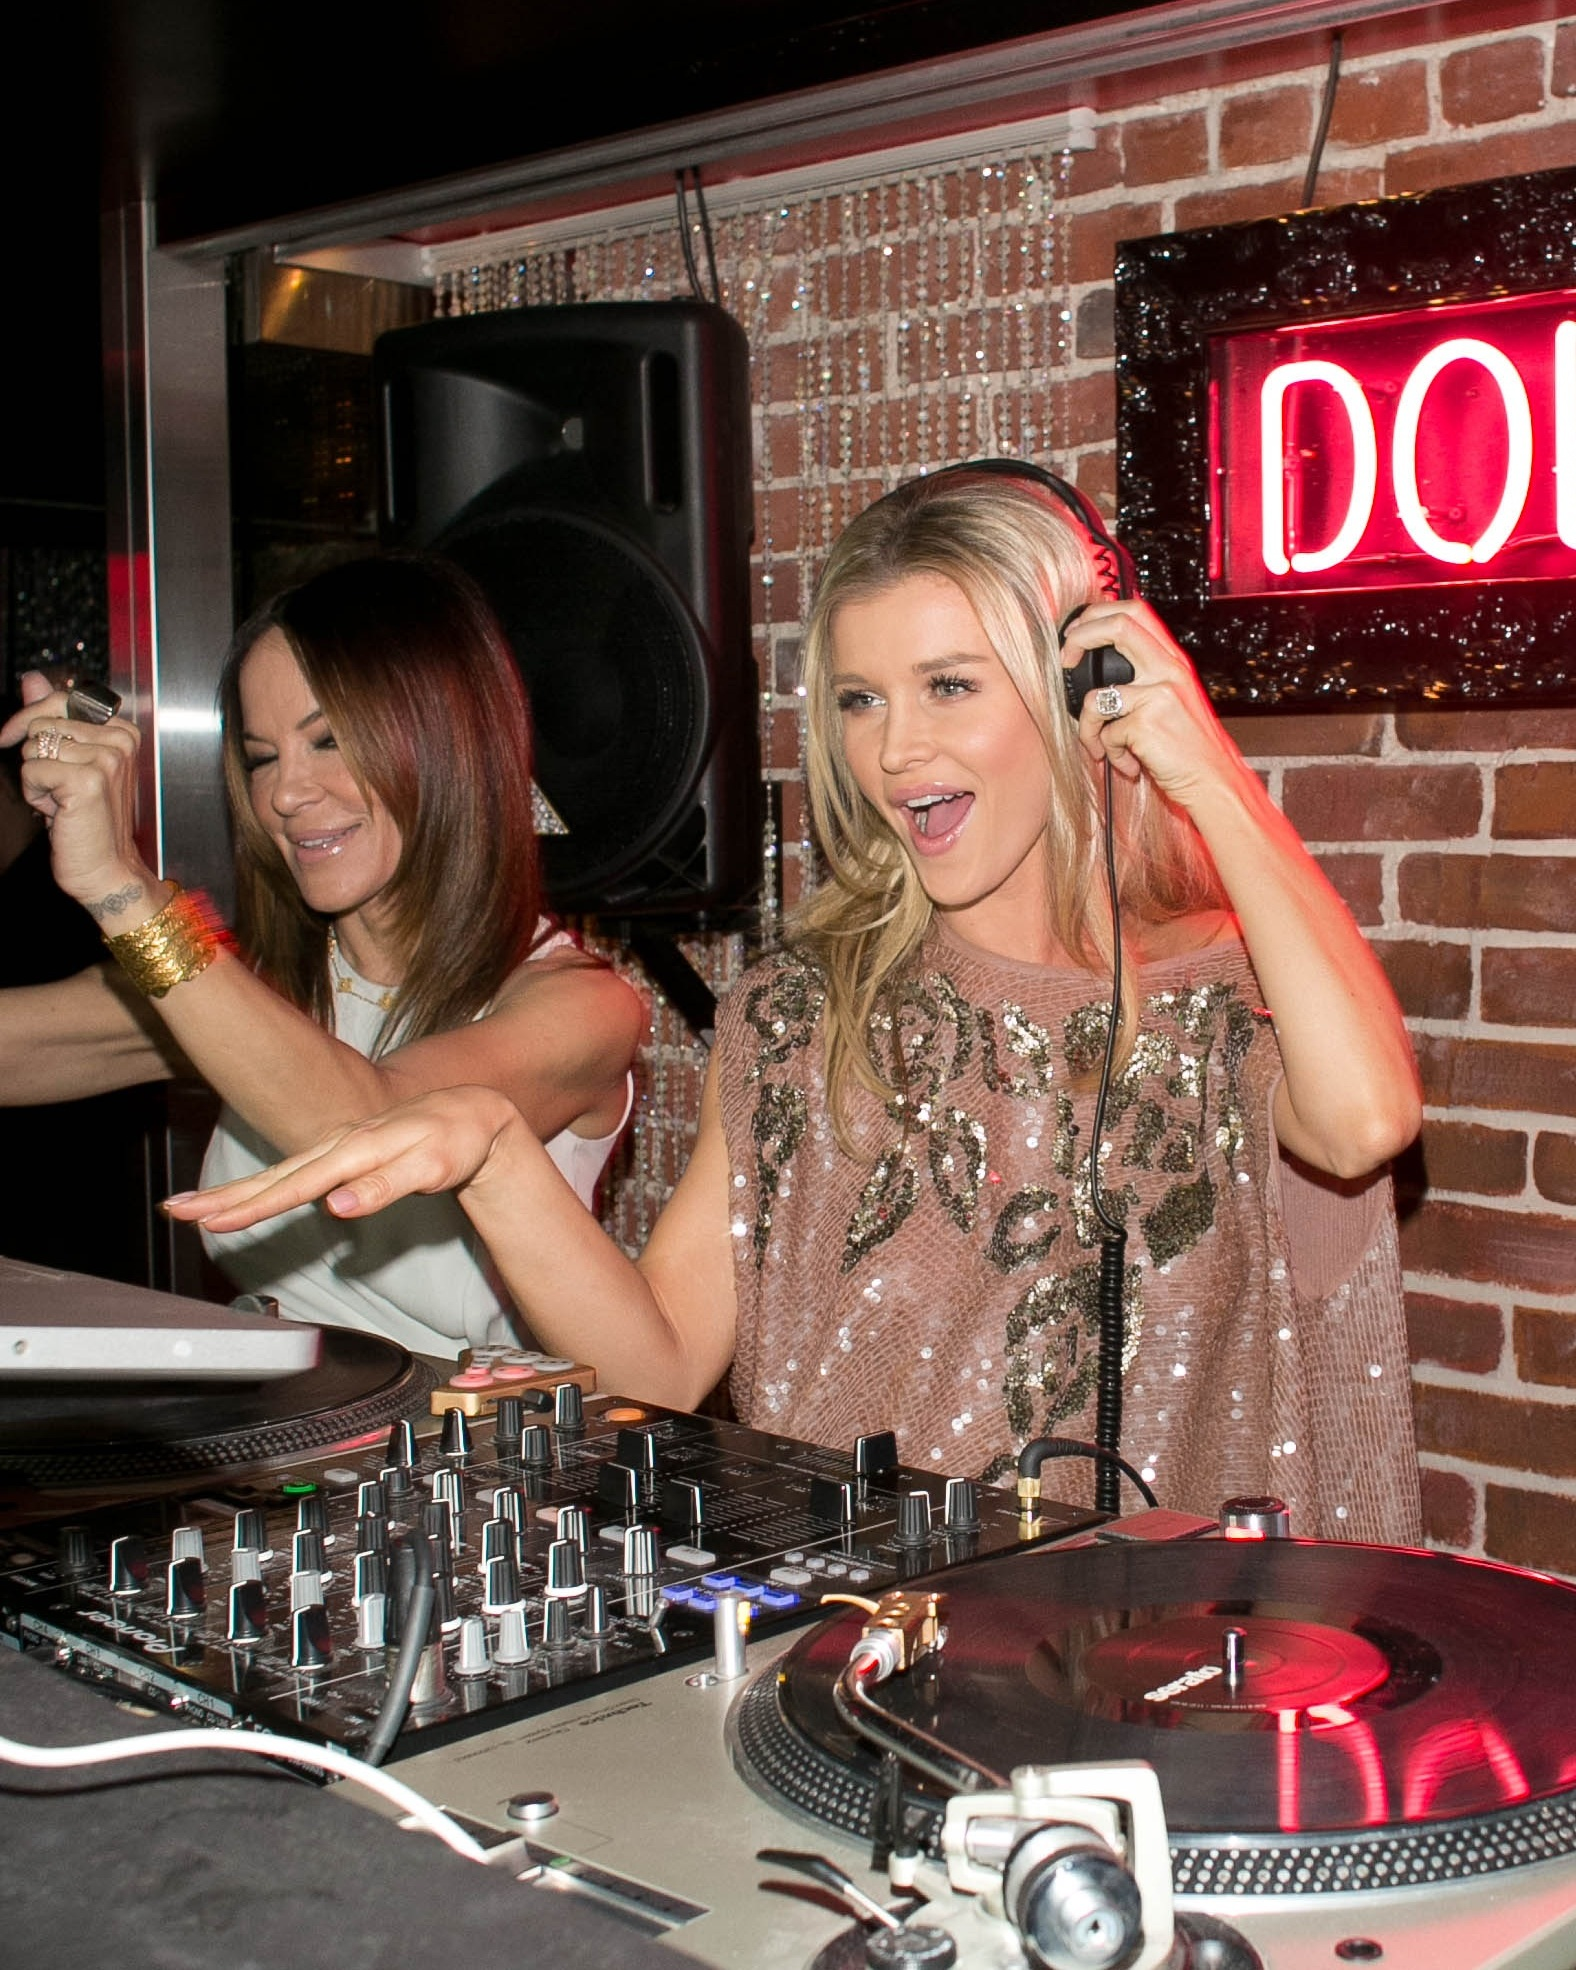 Joanna Krupa (with Robin Antin, left) at the Pussycat Dolls Dollhouse at The Keating Hotel in San Diego Feb. 16. (Robert Benson/WireImage)